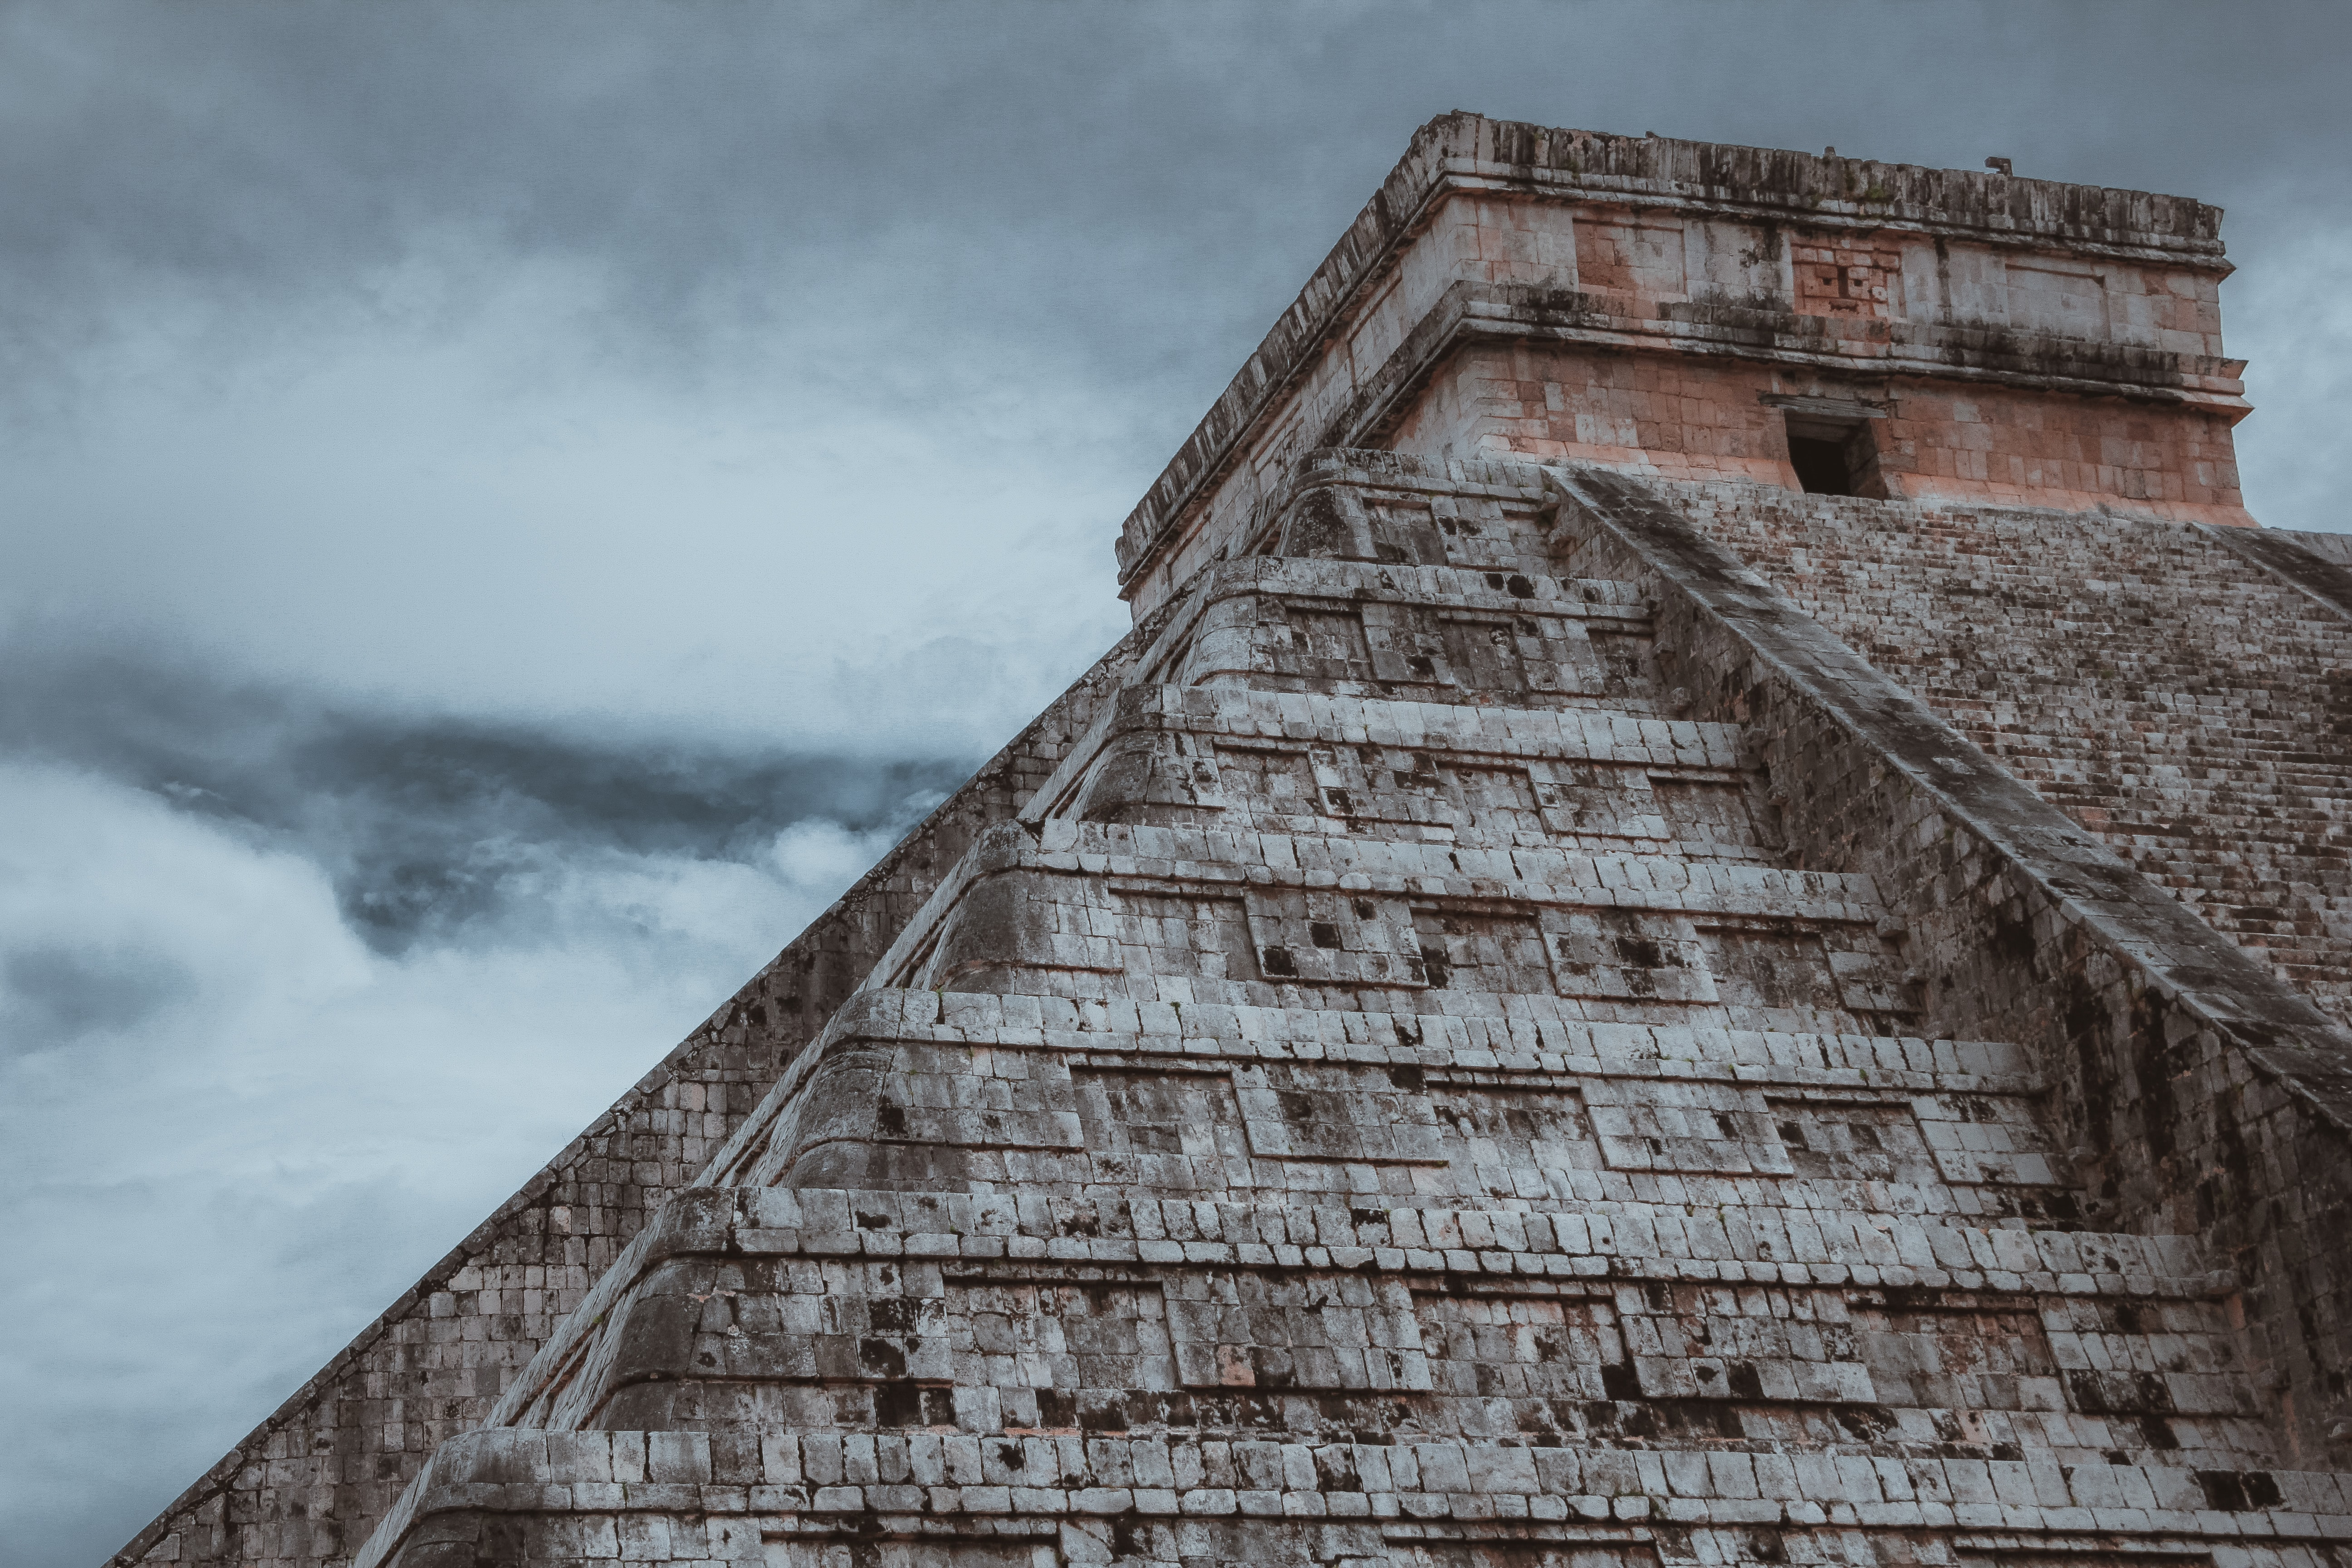 Looking up at an ancient stone pyramid under a cloudy sky in Chichén Itzá